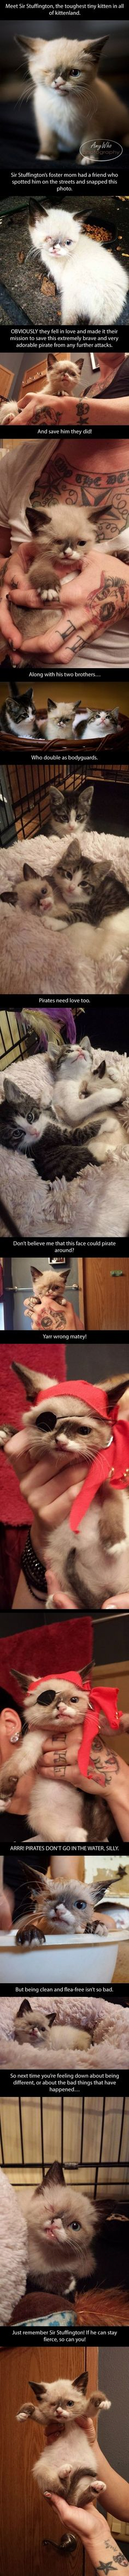 Pirate cat.